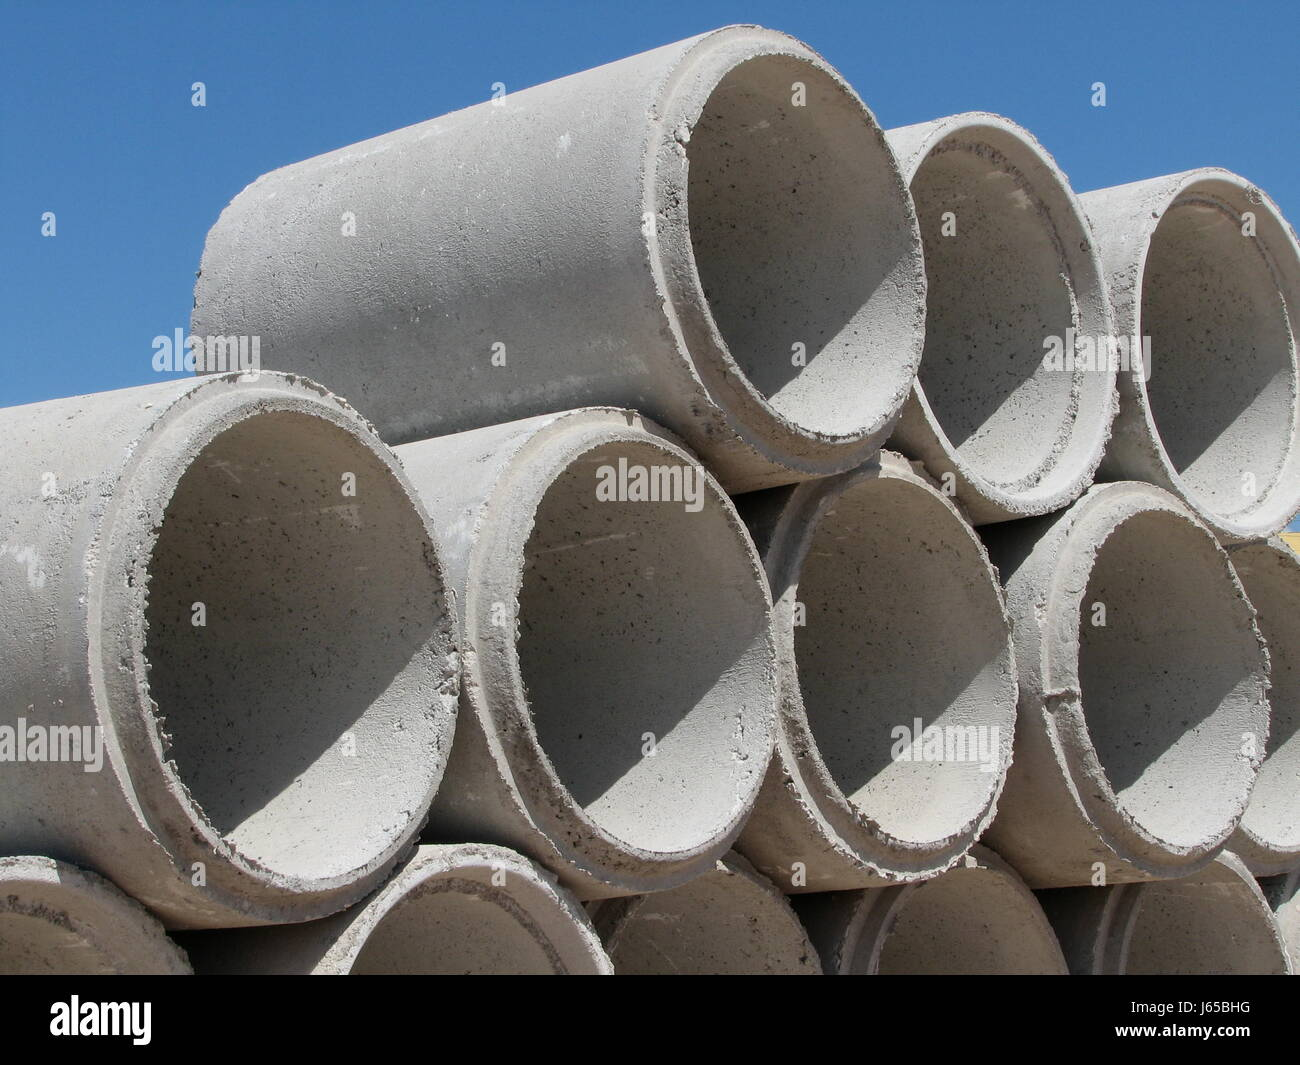 Concrete Tube Construction Industry Piping Construction Site Stone Stock Photo Alamy